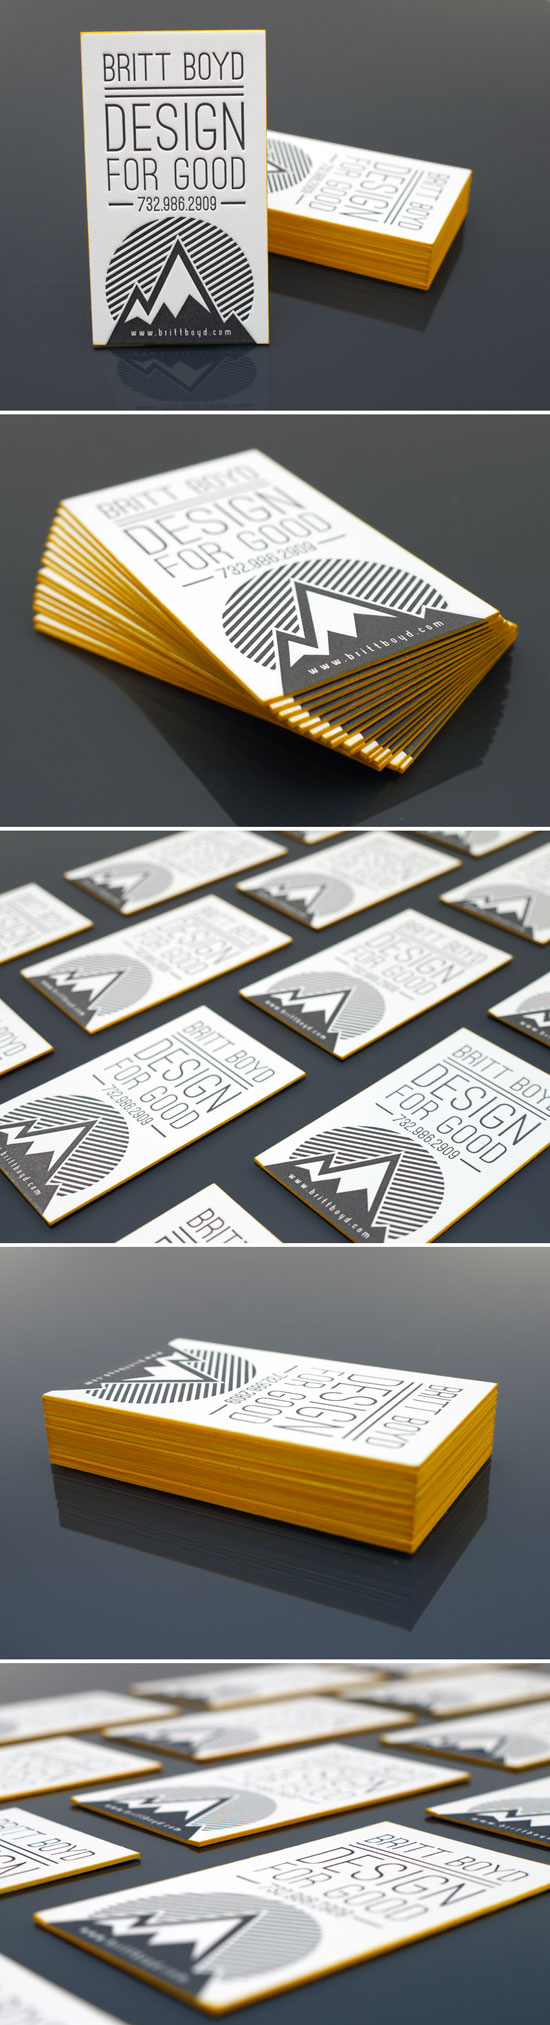 Best Business Card Designs - 300 Cool Examples and Ideas